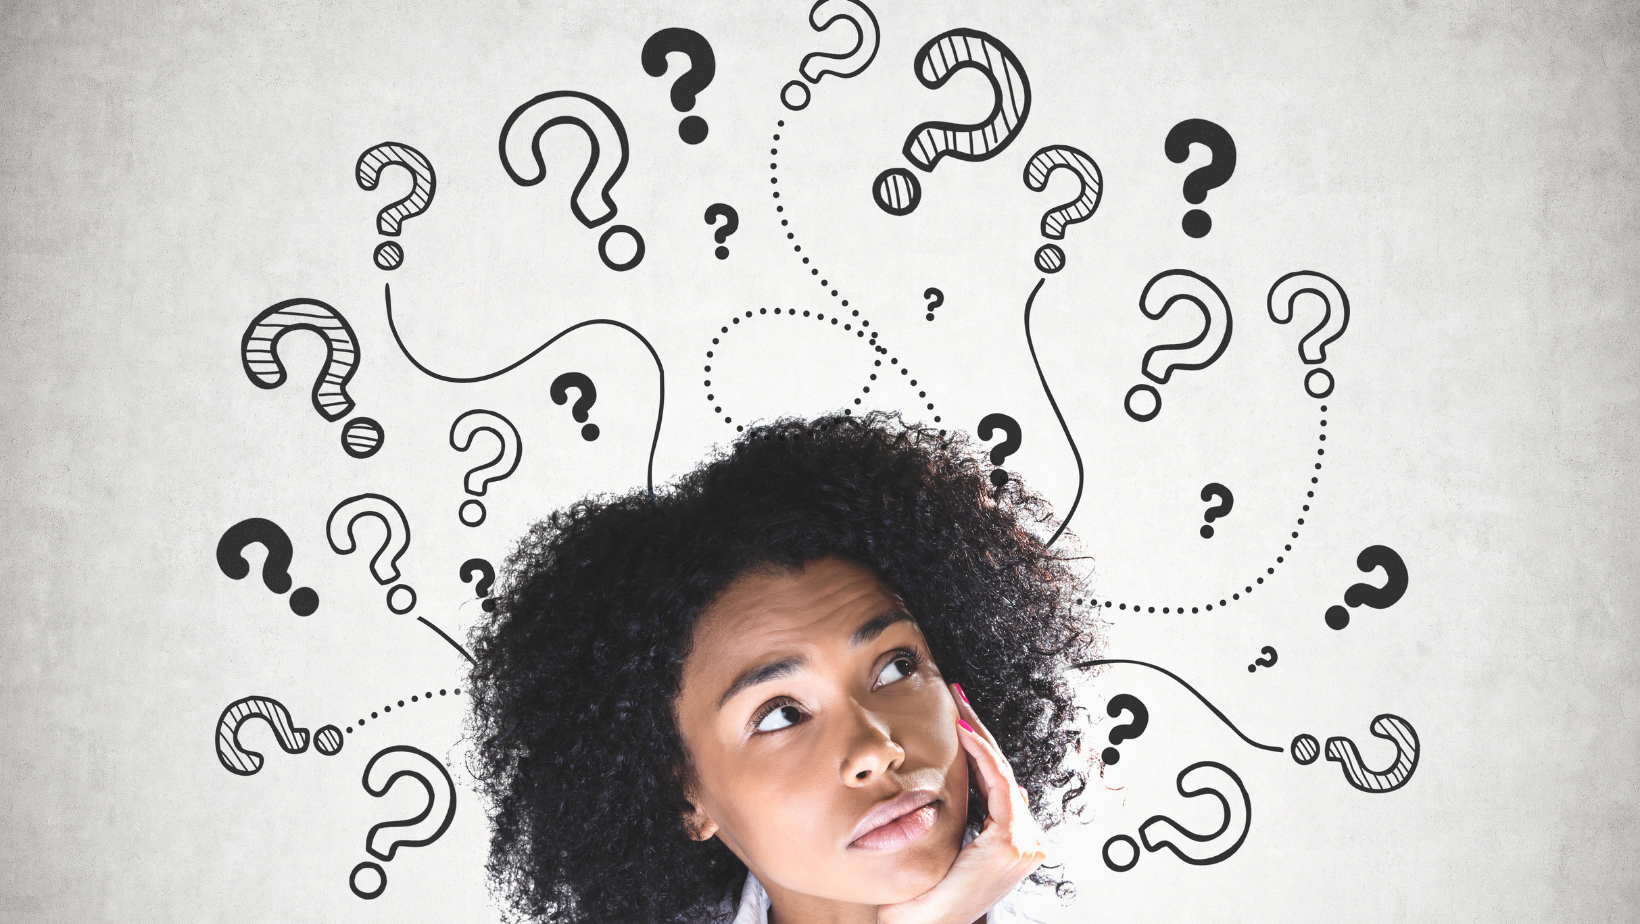 woman with question marks around her head